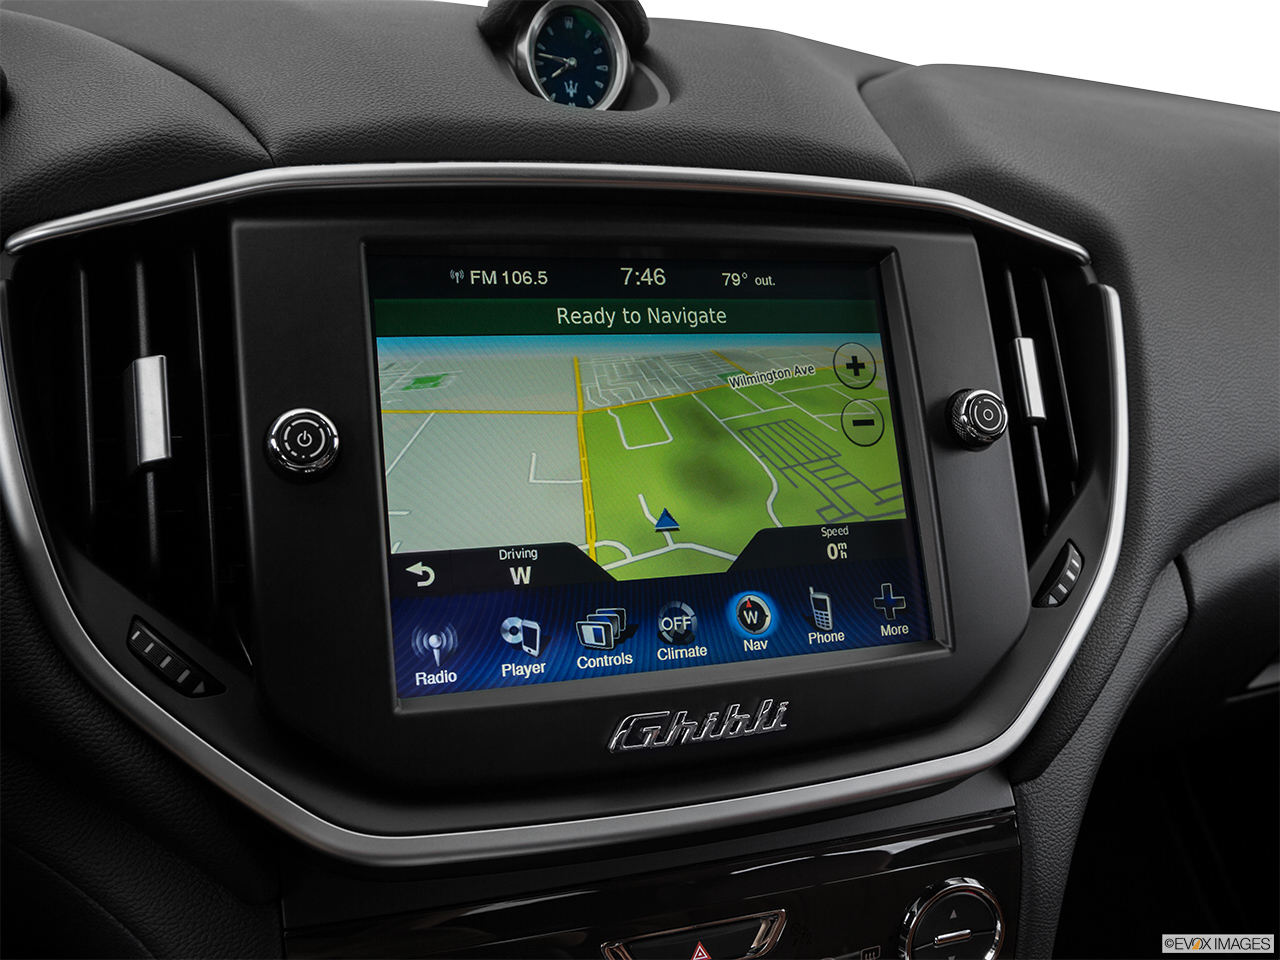 2015 Maserati Ghibli Base Driver position view of navigation system.